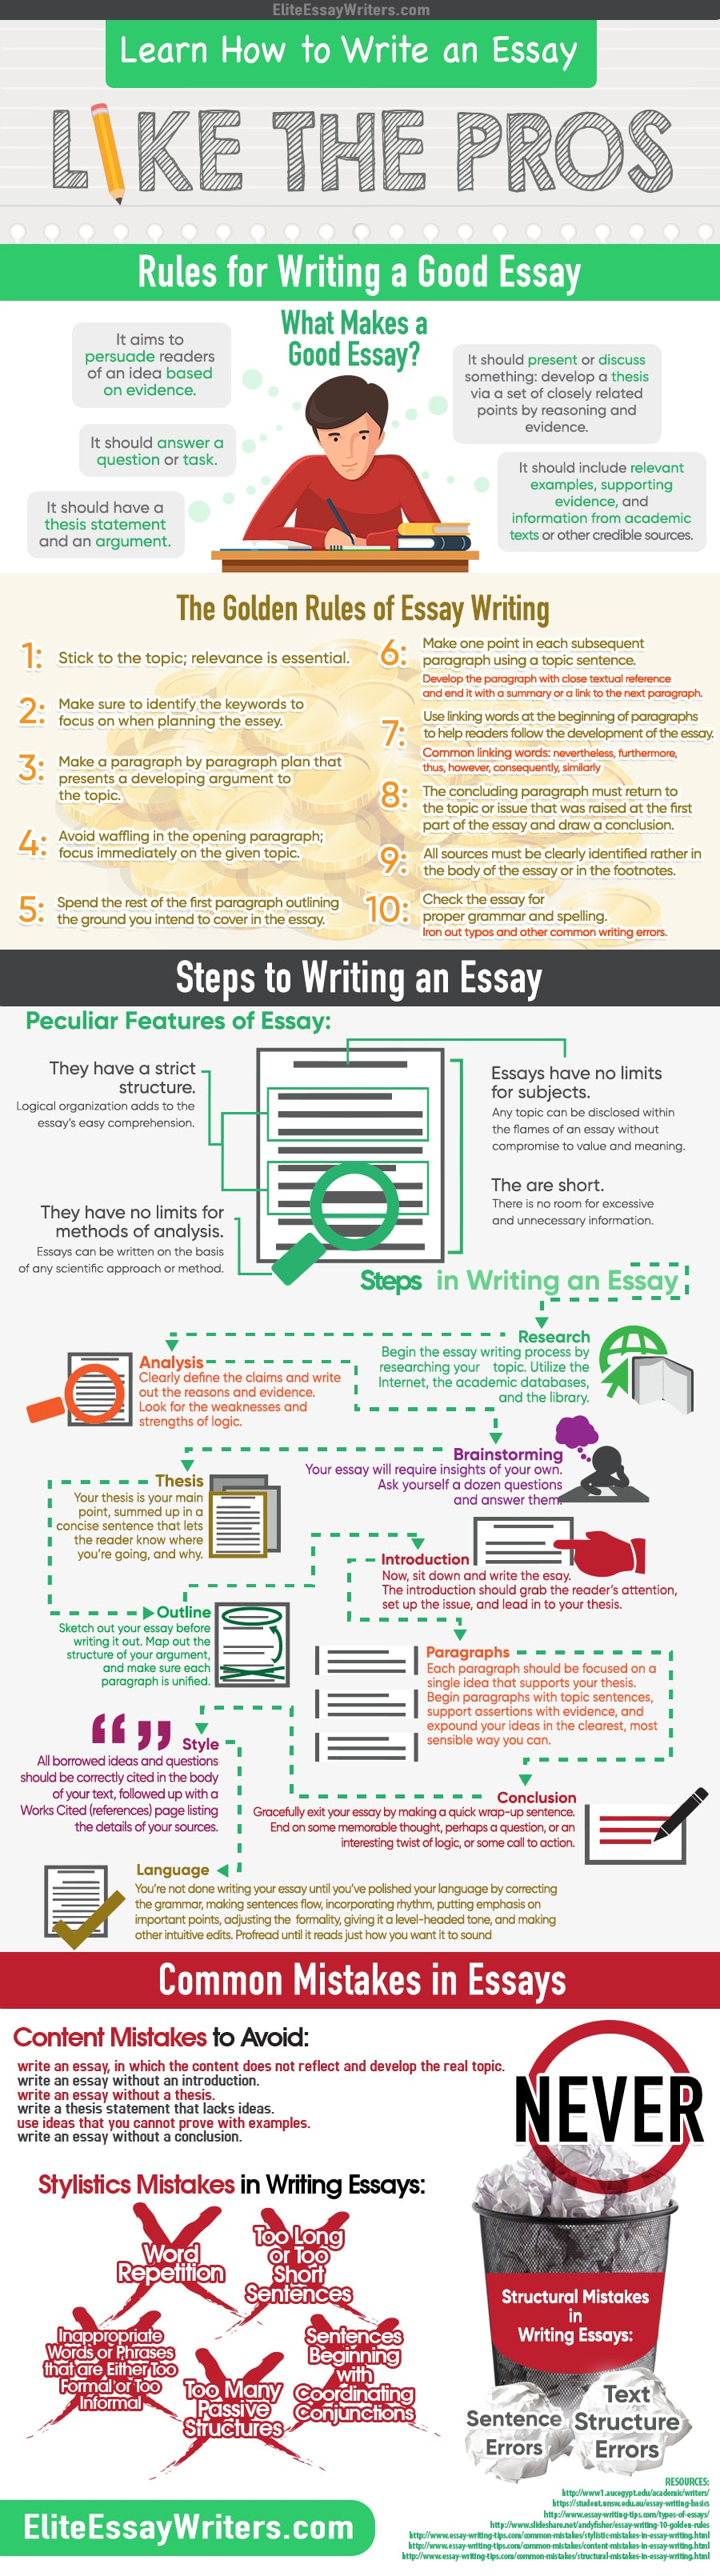 Corruption Essay In English Essay Writing Tips Essay On Health Awareness also Research Paper Essay Format Top Tips On How To Write An Essay And How To Get Your Essay Done Compare And Contrast Essay Topics For High School